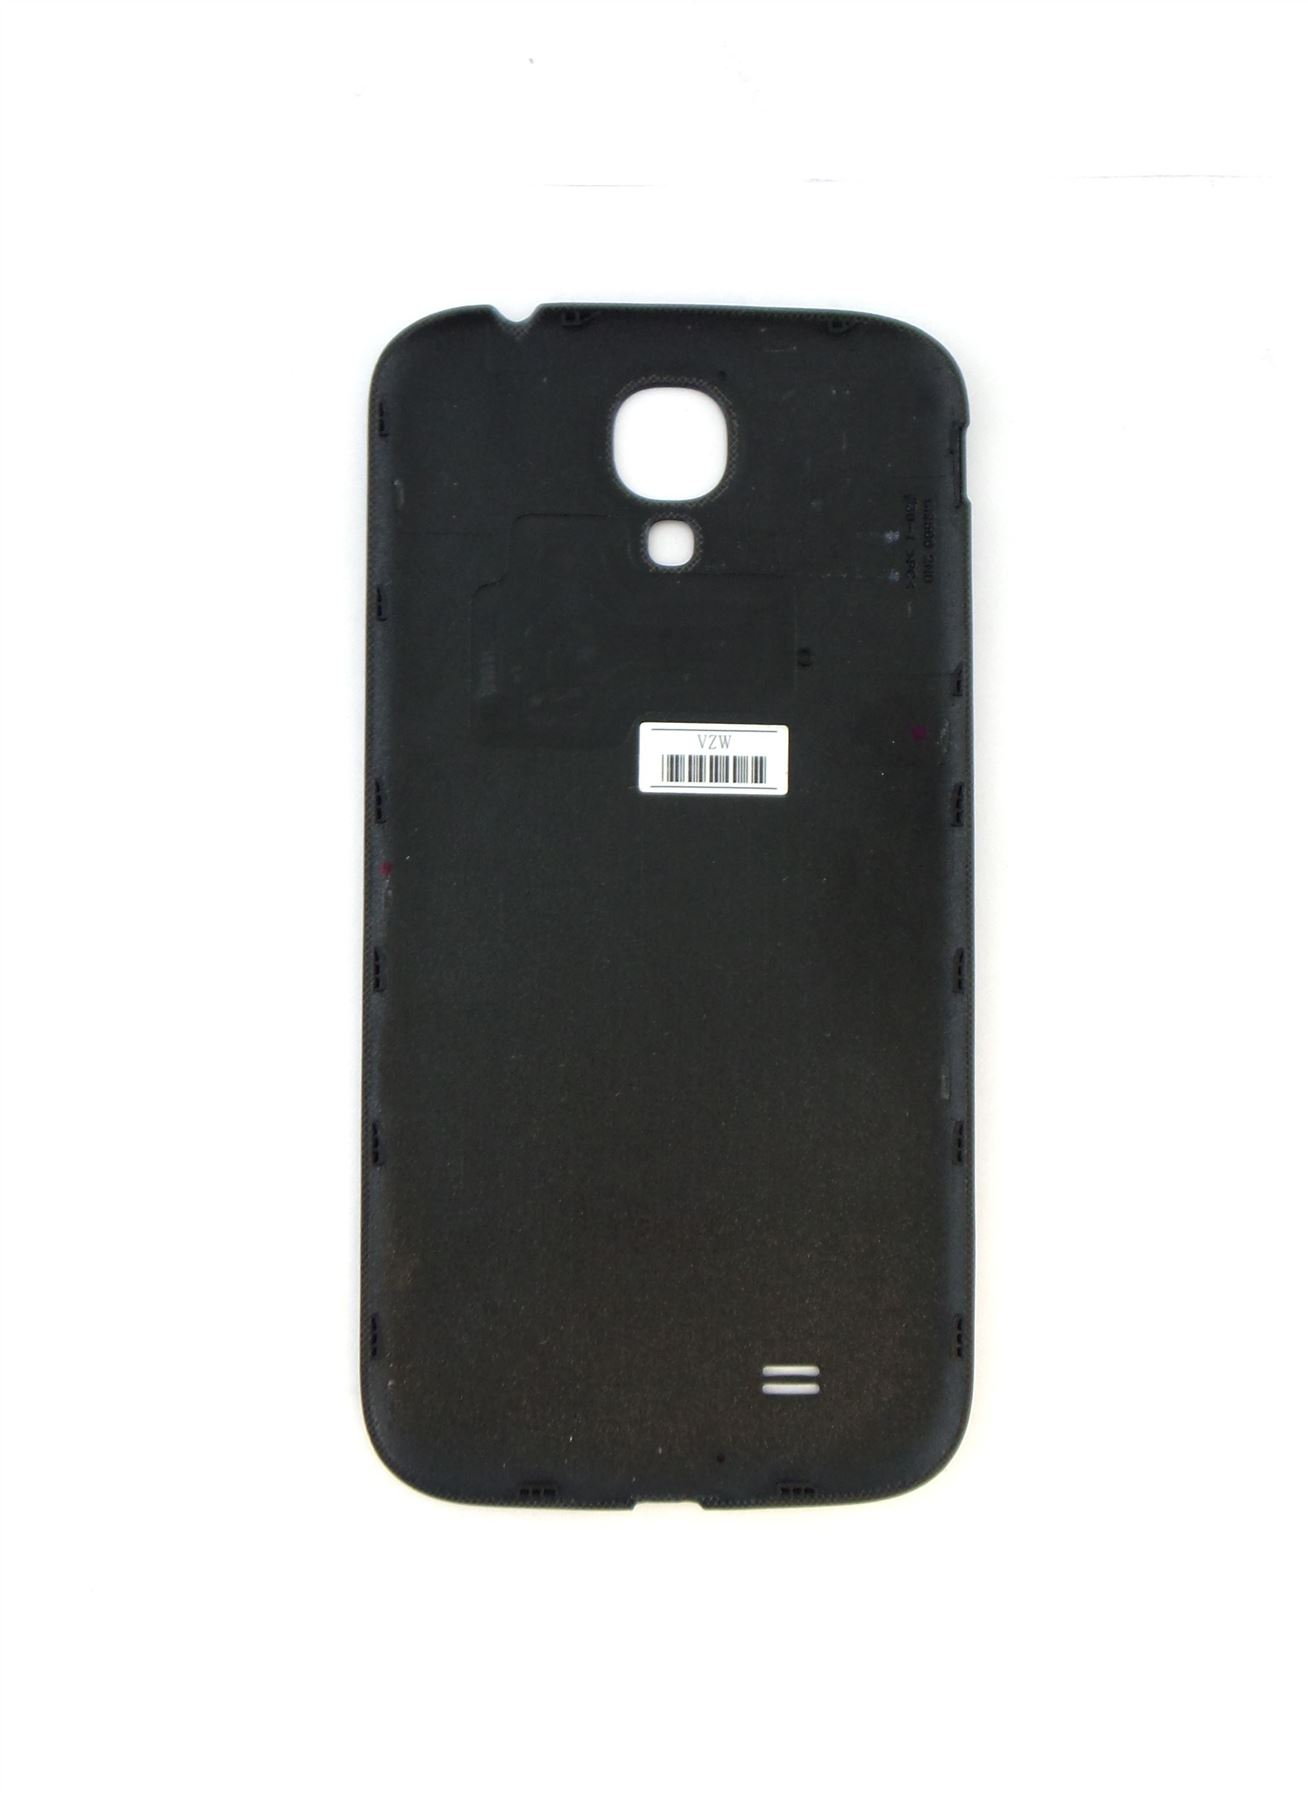 Samsung-Galaxy-S4-Authentic-Battery-Door-Cover-AT-amp-T-Verizon-T-Mobile thumbnail 53